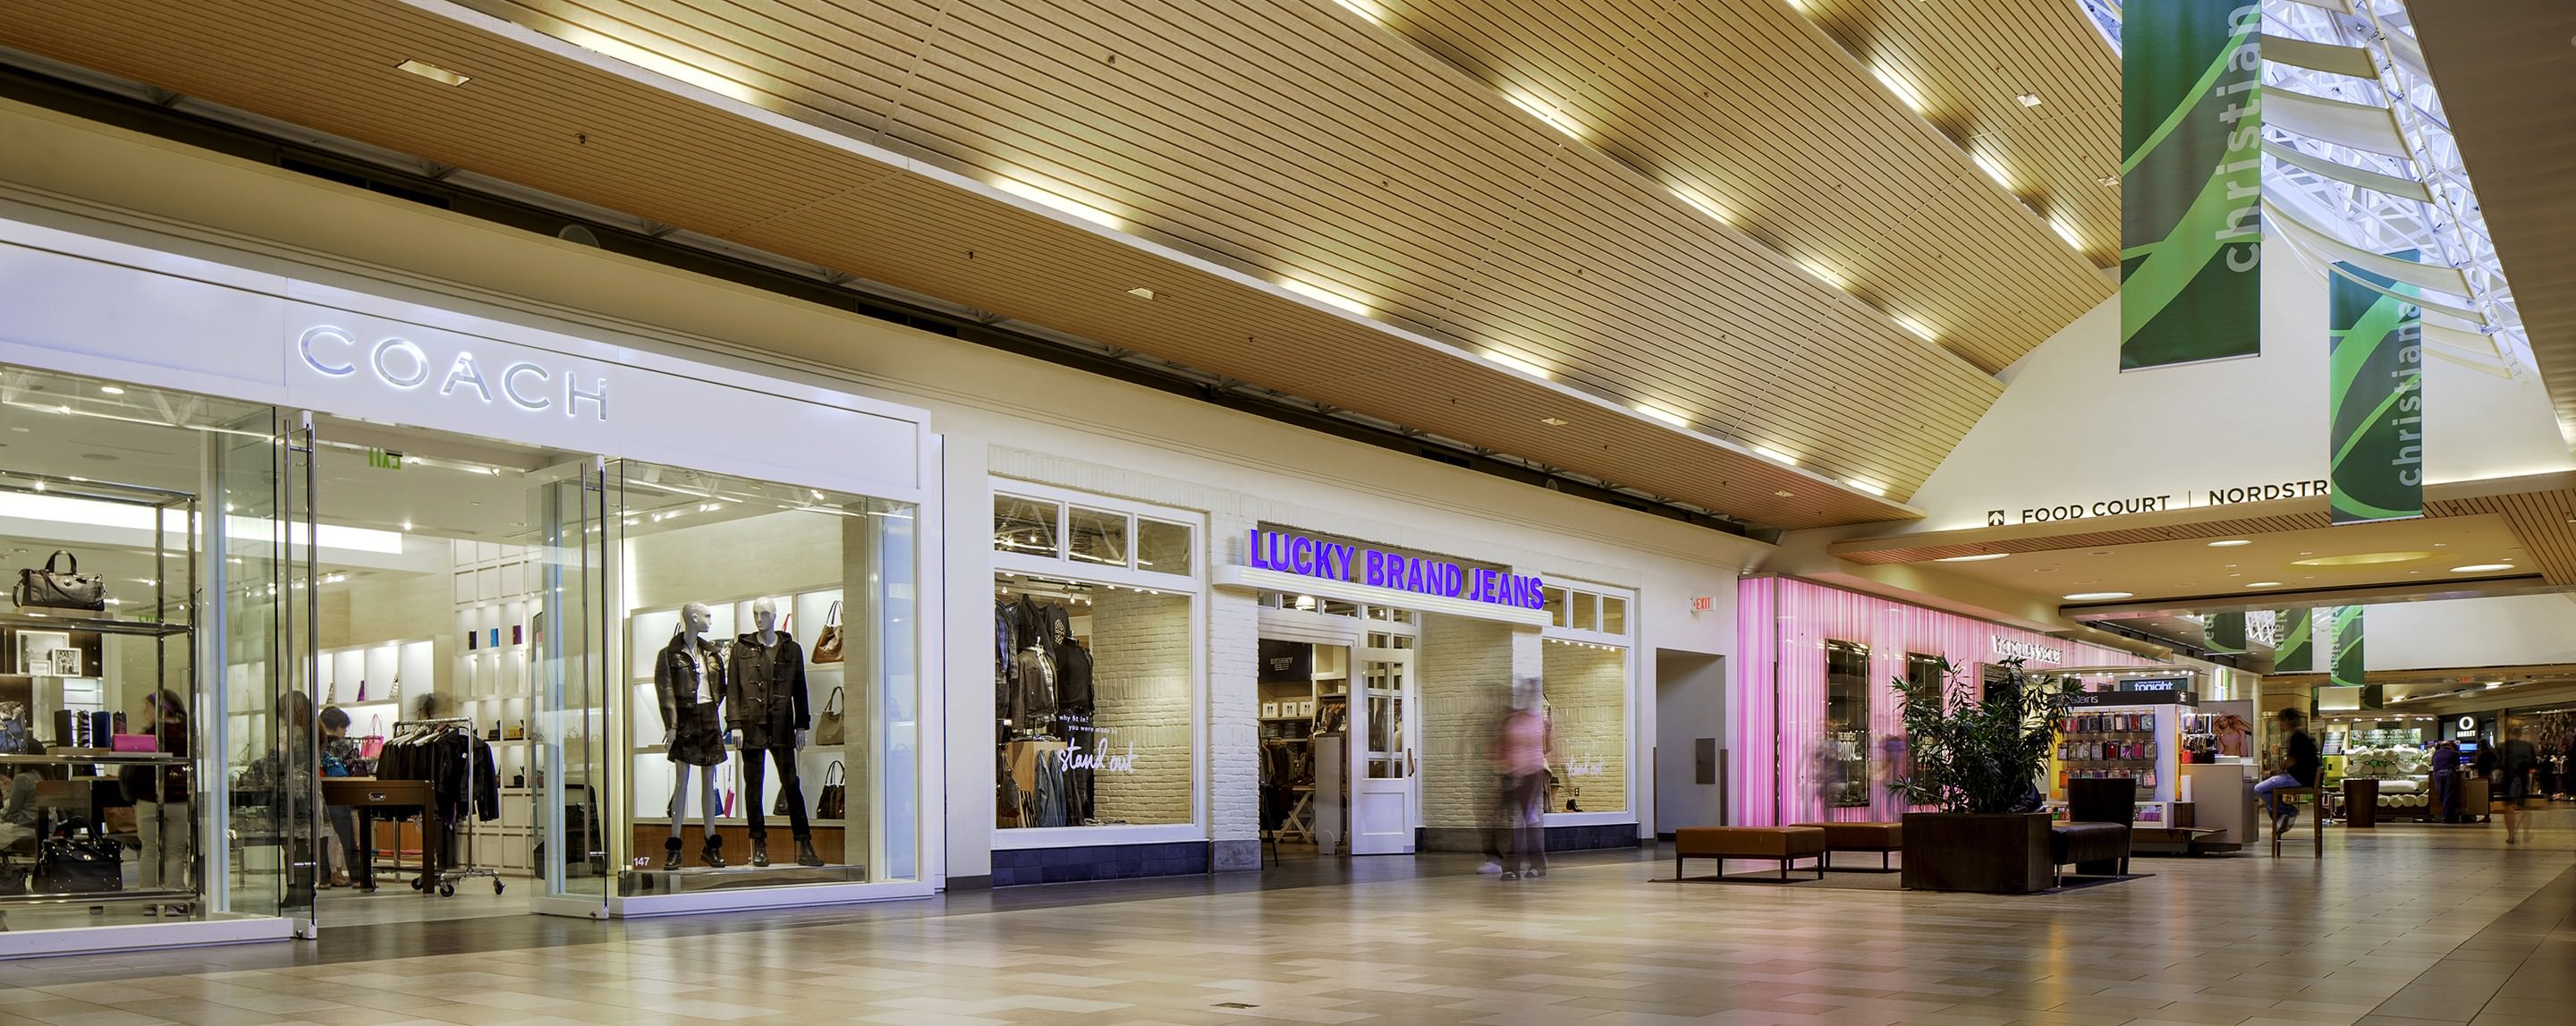 The Apple Store is located in Christiana Mall, at Christiana Mall Road in Newark, DE. Traveling on I, take exit 4A for DE-1/DE-7 south toward Christiana. Take exit A for Mall Road and follow signs for Nordstrom or Macy's. The Apple Store is in the Nordstrom wing, next to Anthropologie.